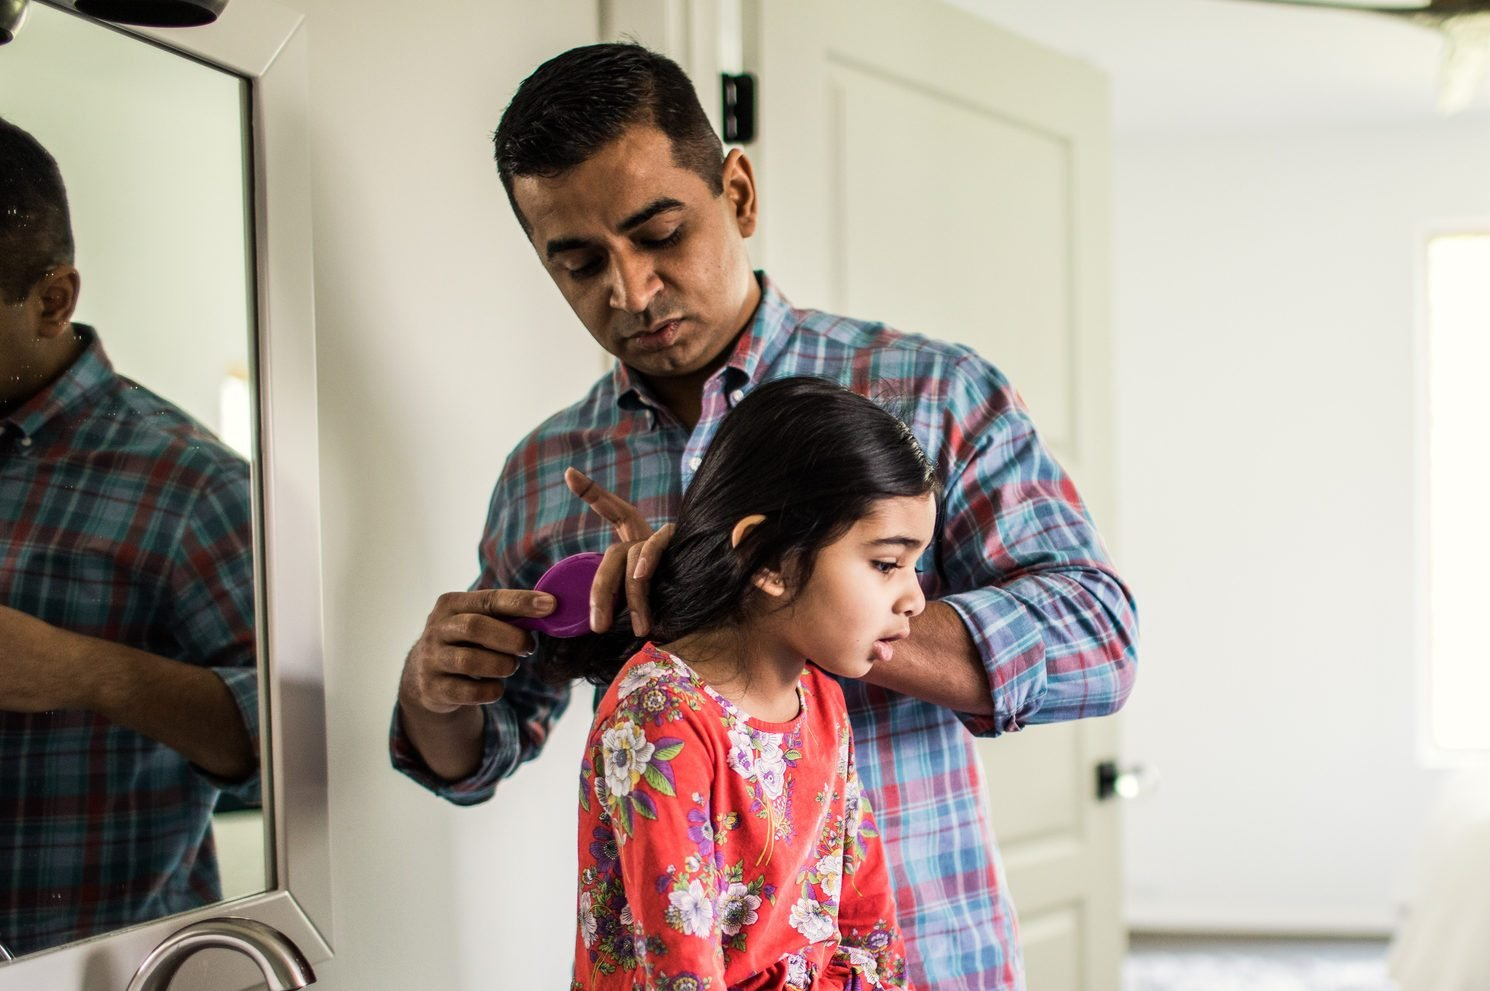 Father brushing daughters hair in bathroom